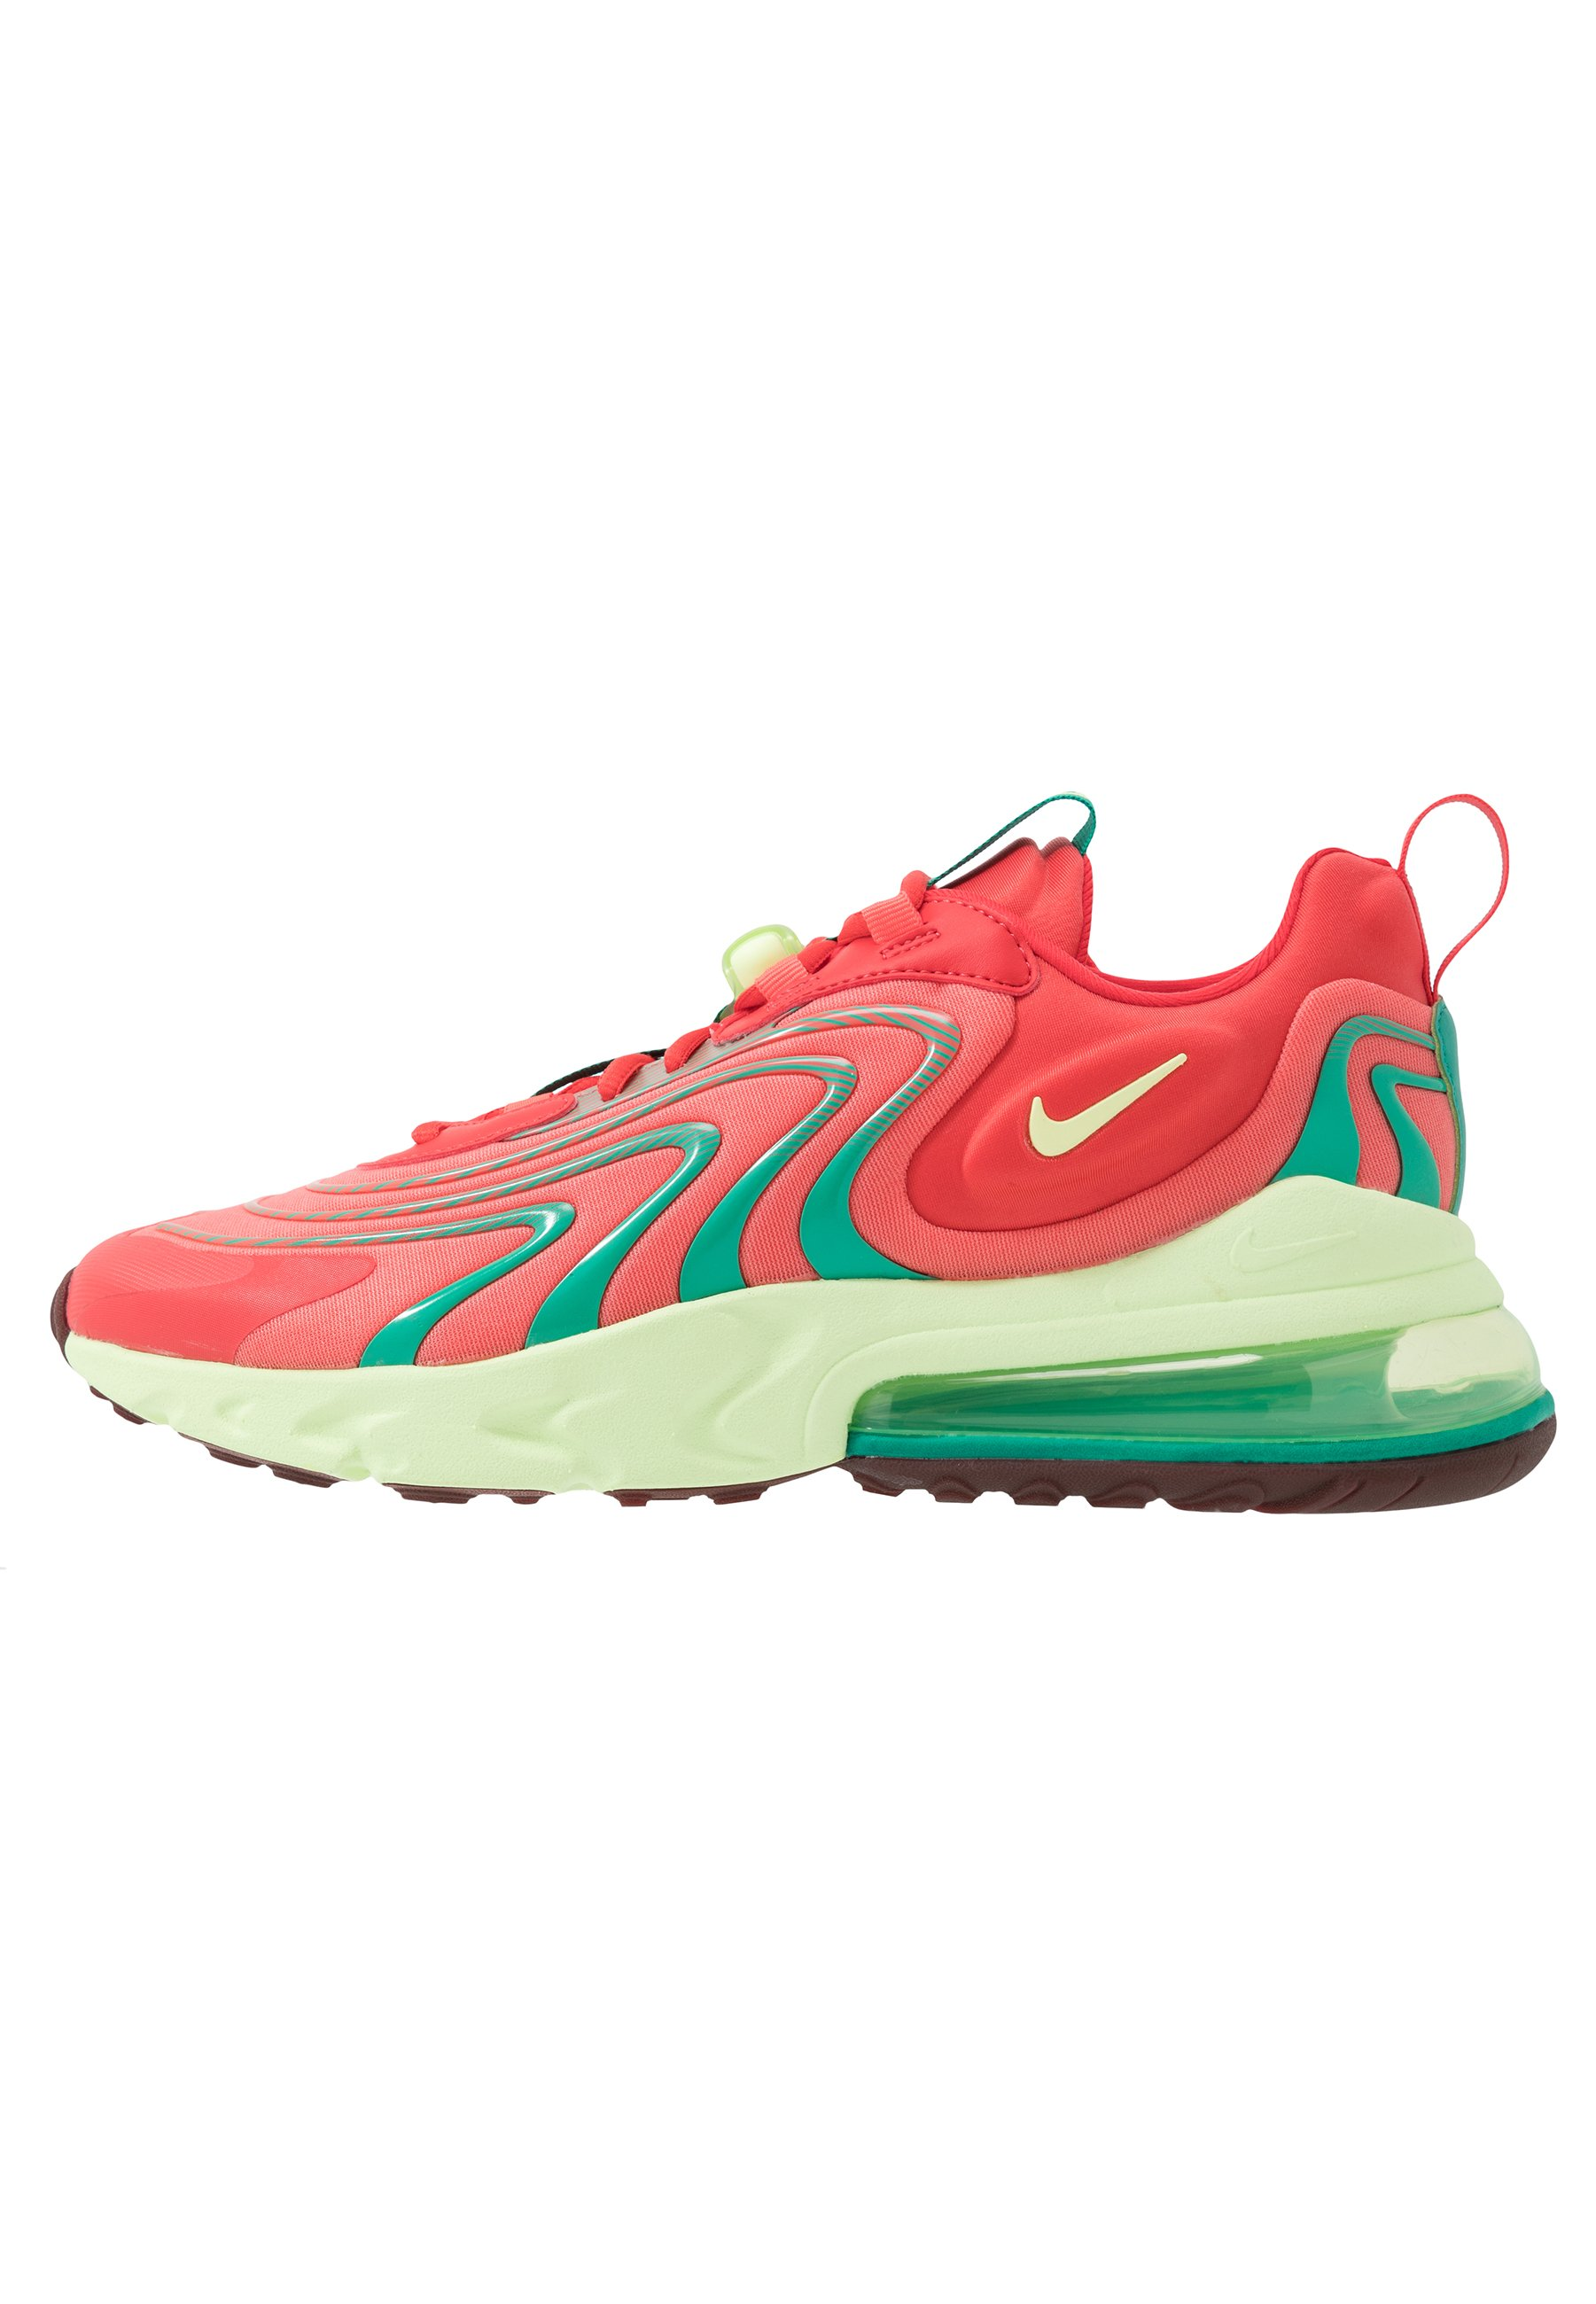 AIR MAX 270 REACT ENG Sneakers laag track redbarely voltmagic emberneptune greenteam red